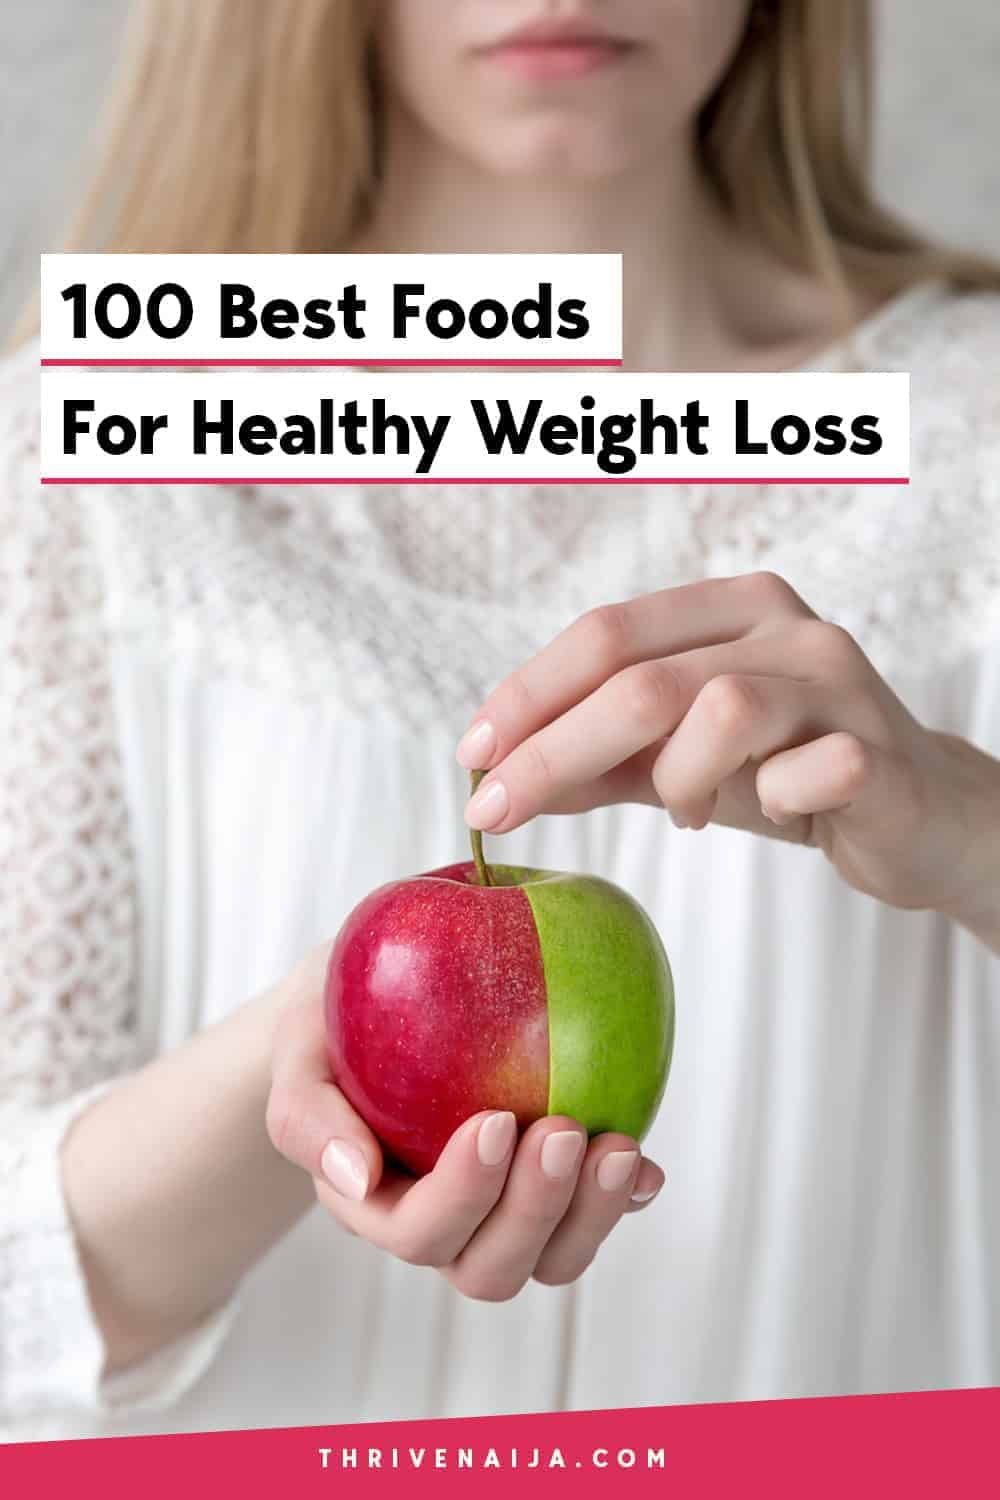 Best Foods For Healthy Weight Loss